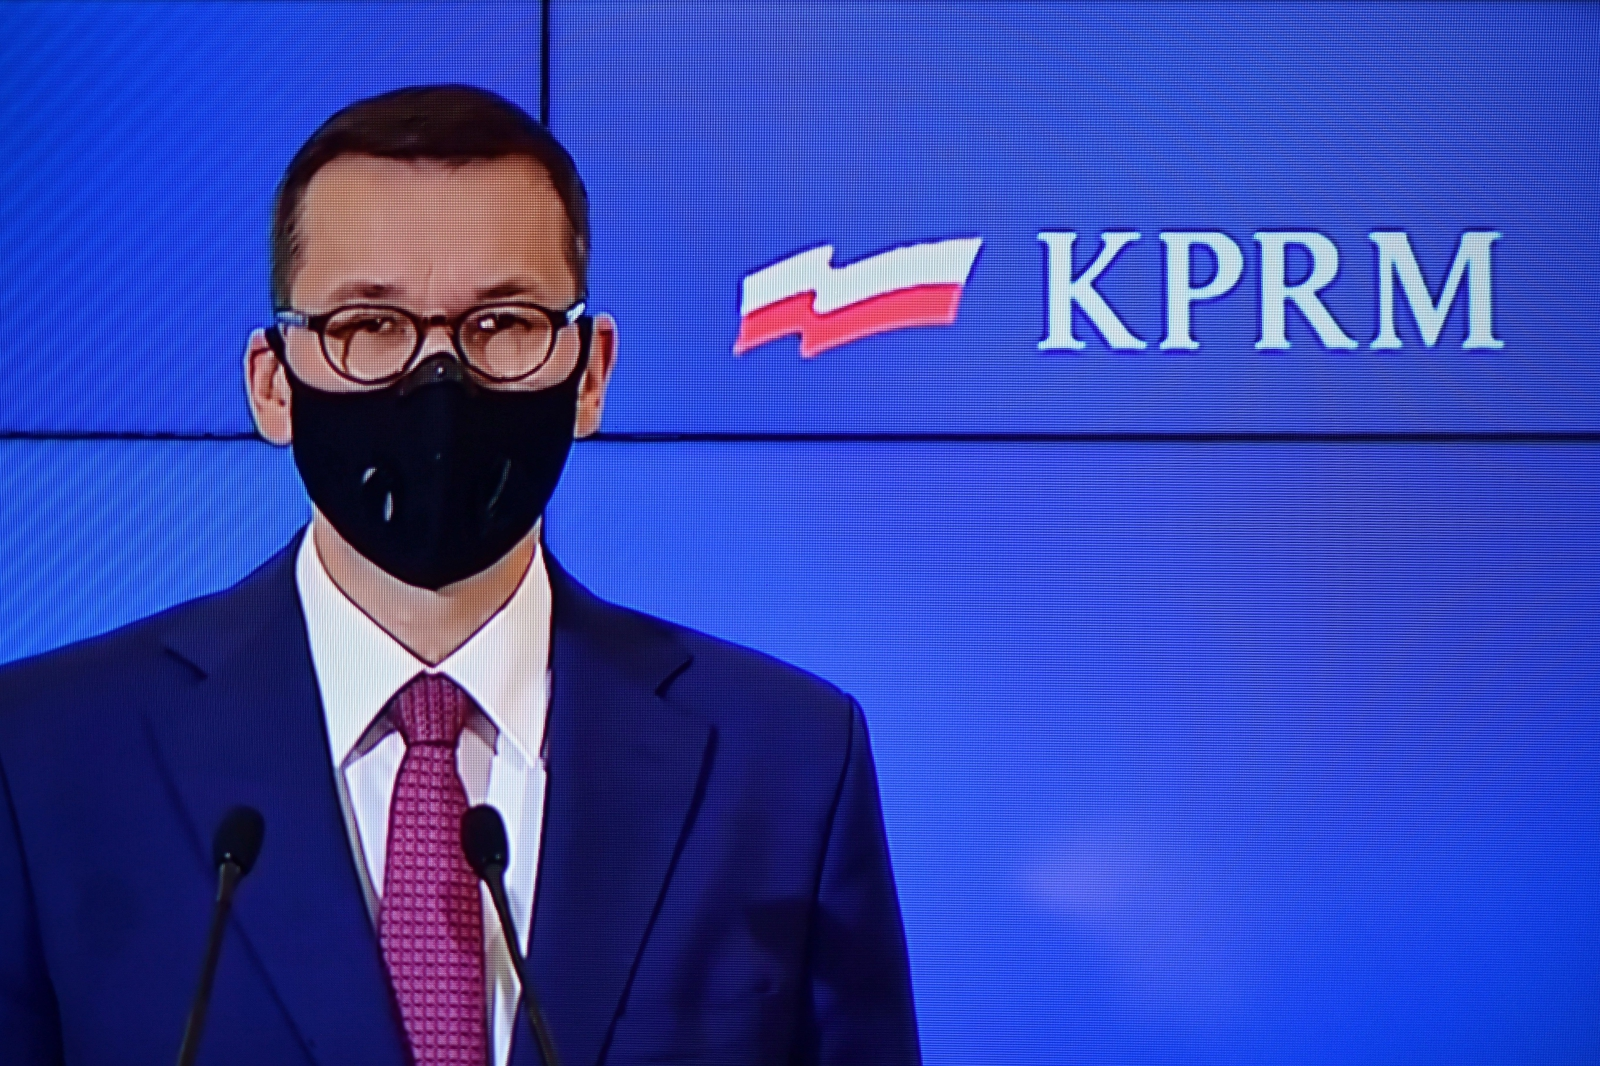 Polish Prime Minister Mateusz Morawiecki during an online conference on Saturday morning